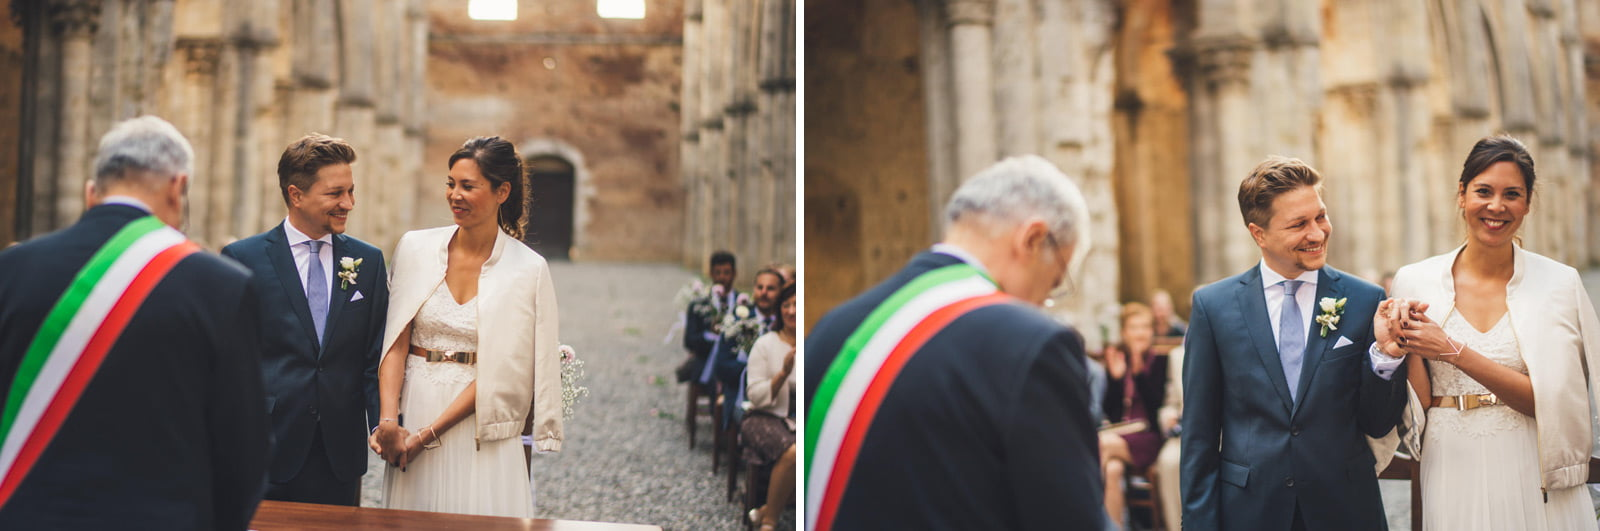 046-wedding-tuscany-san-galgano-siena-photographer